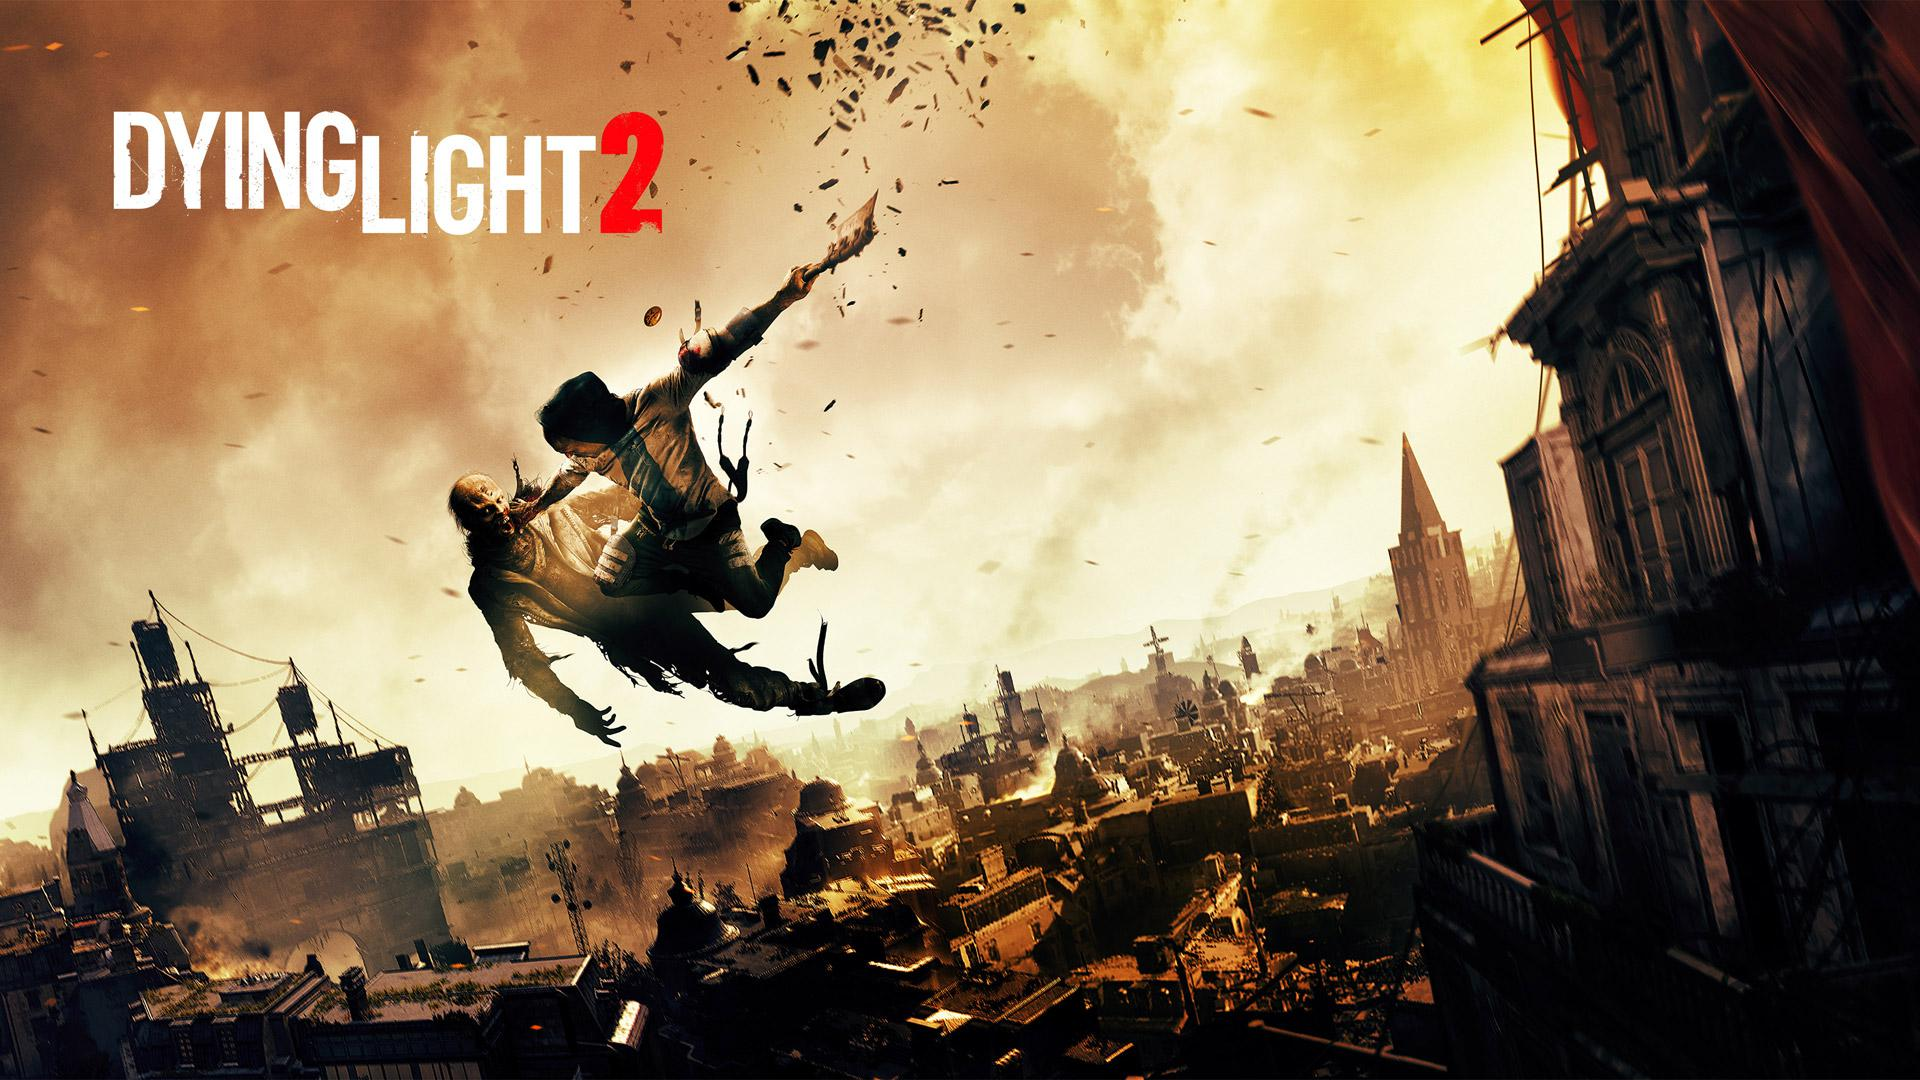 Dying Light 2, Techland promises to share development updates in the new  year »Let's Talk About Videogames